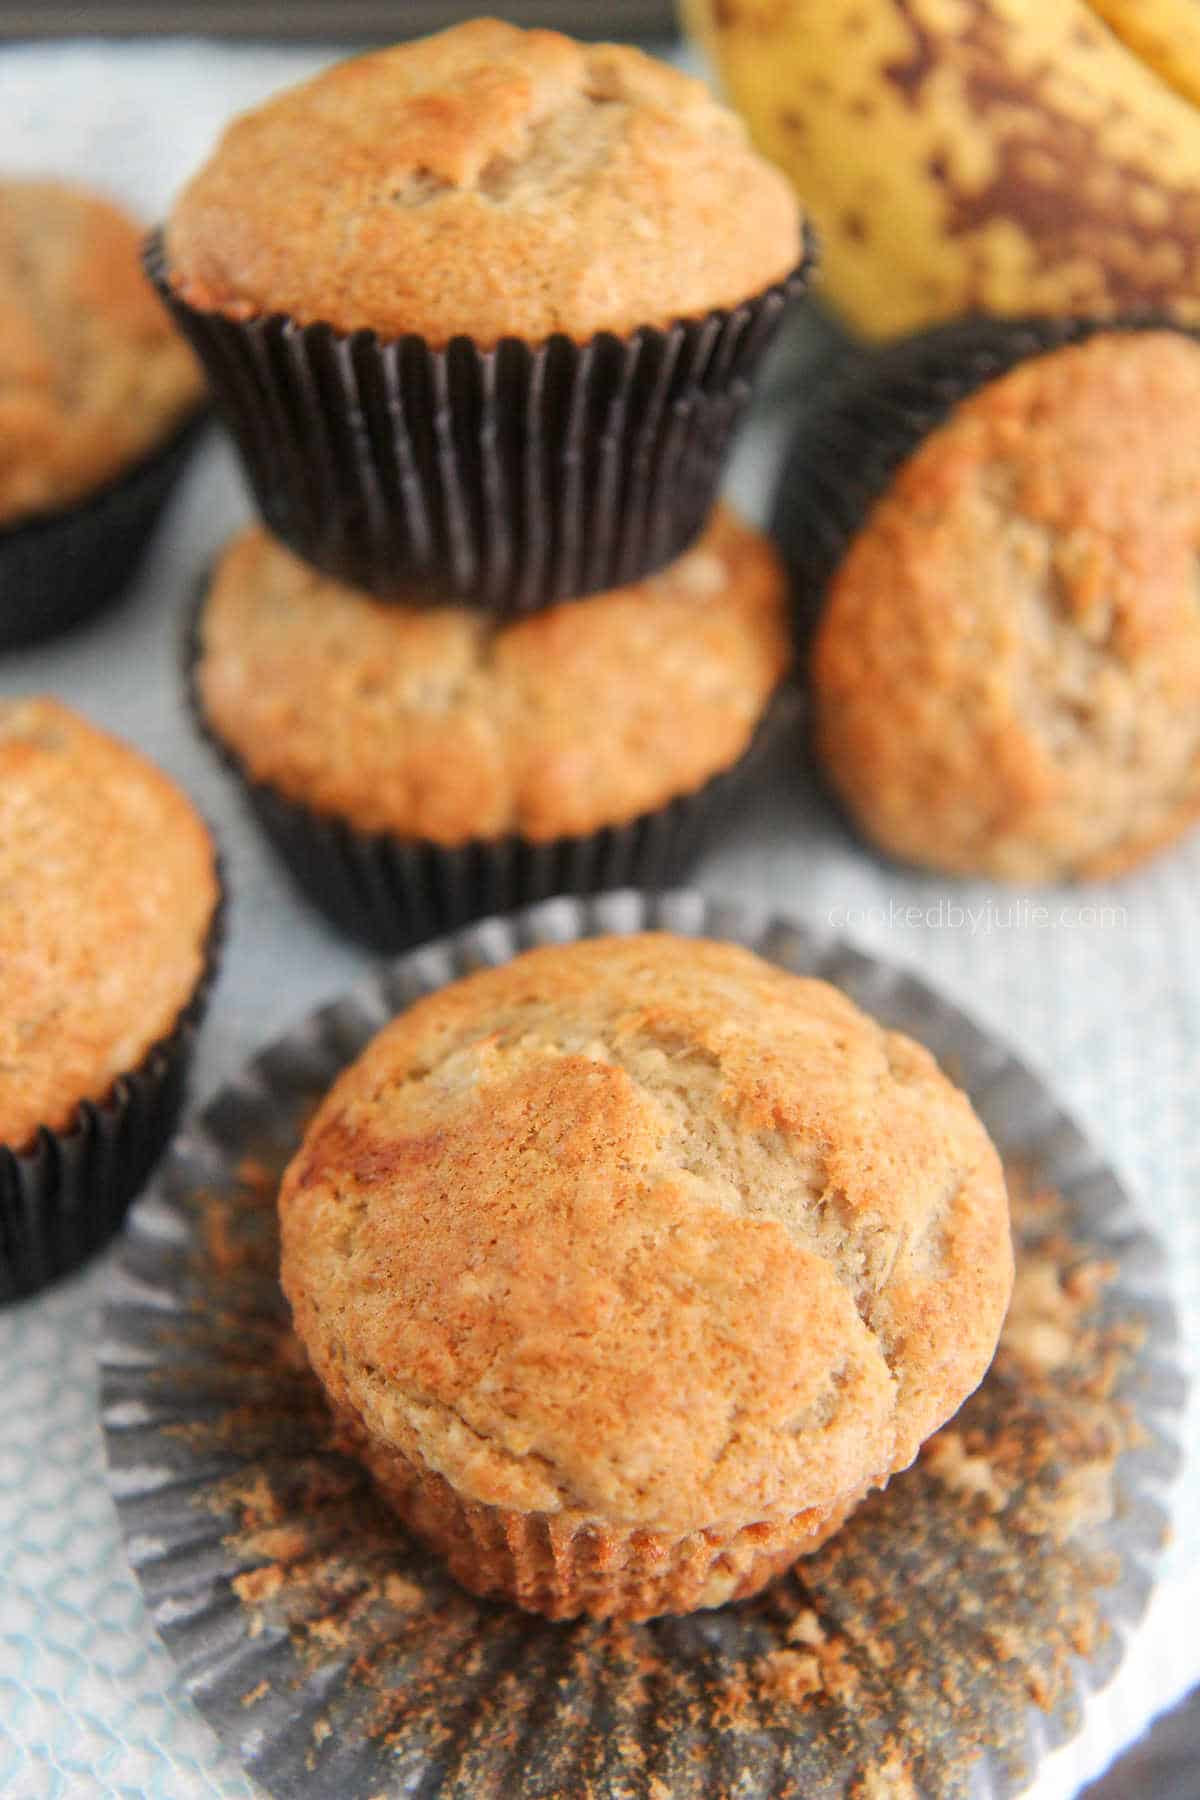 banana muffins with bananas in the background